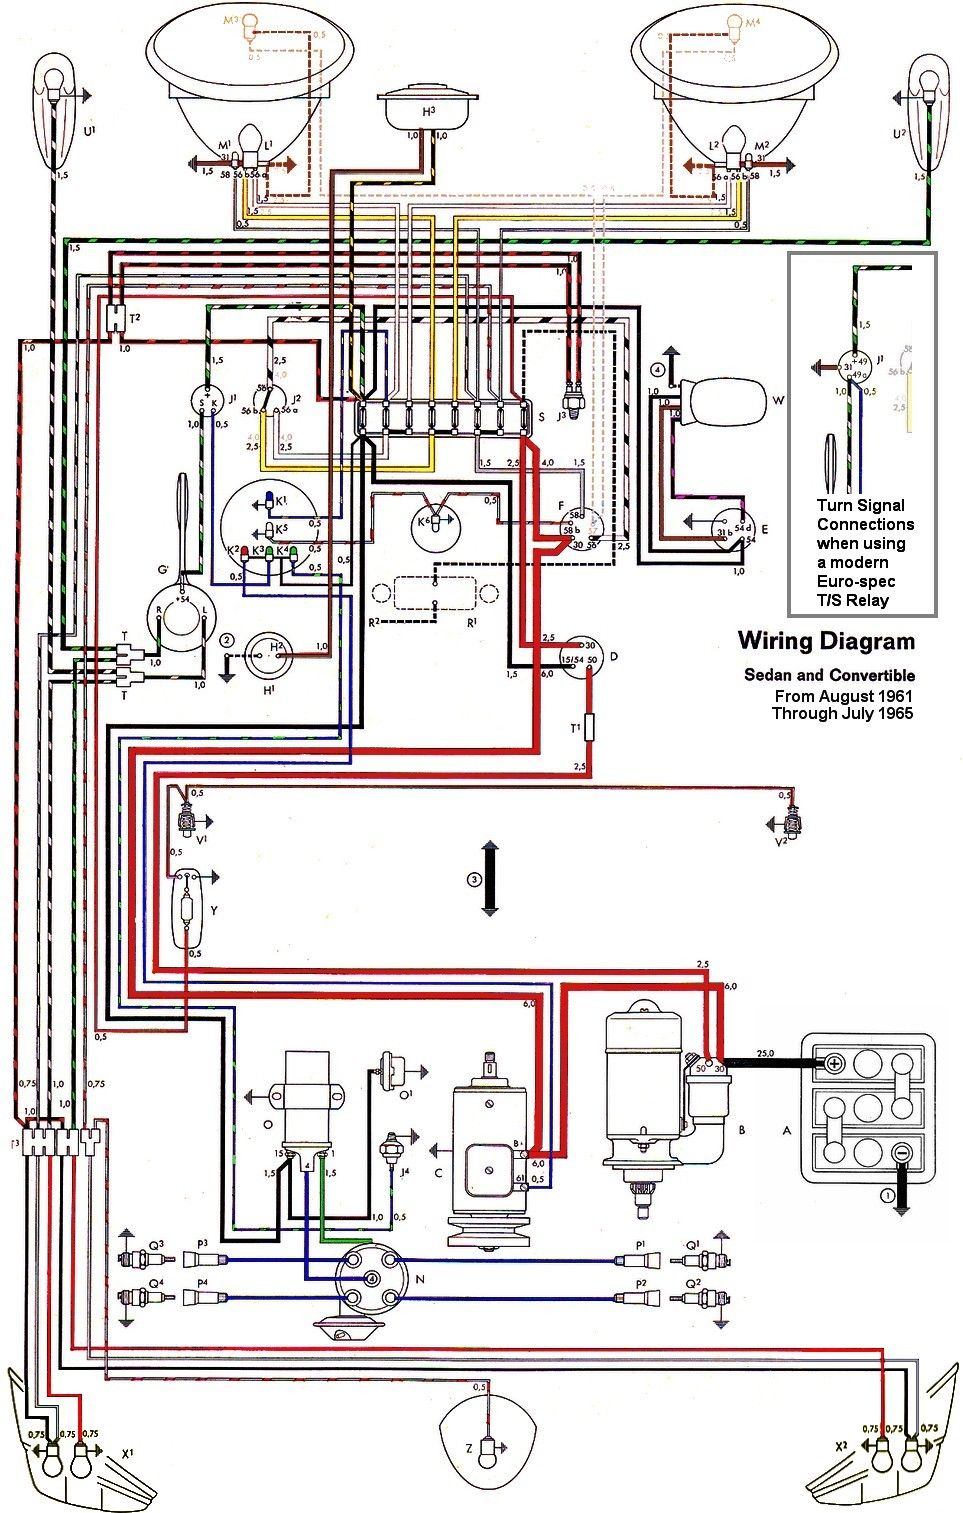 wiring diagram vw beetle sedan and convertible 1961 1965 vw in rh pinterest com vw beetle wiring diagram 1972 wiring diagram vw beetle 1967